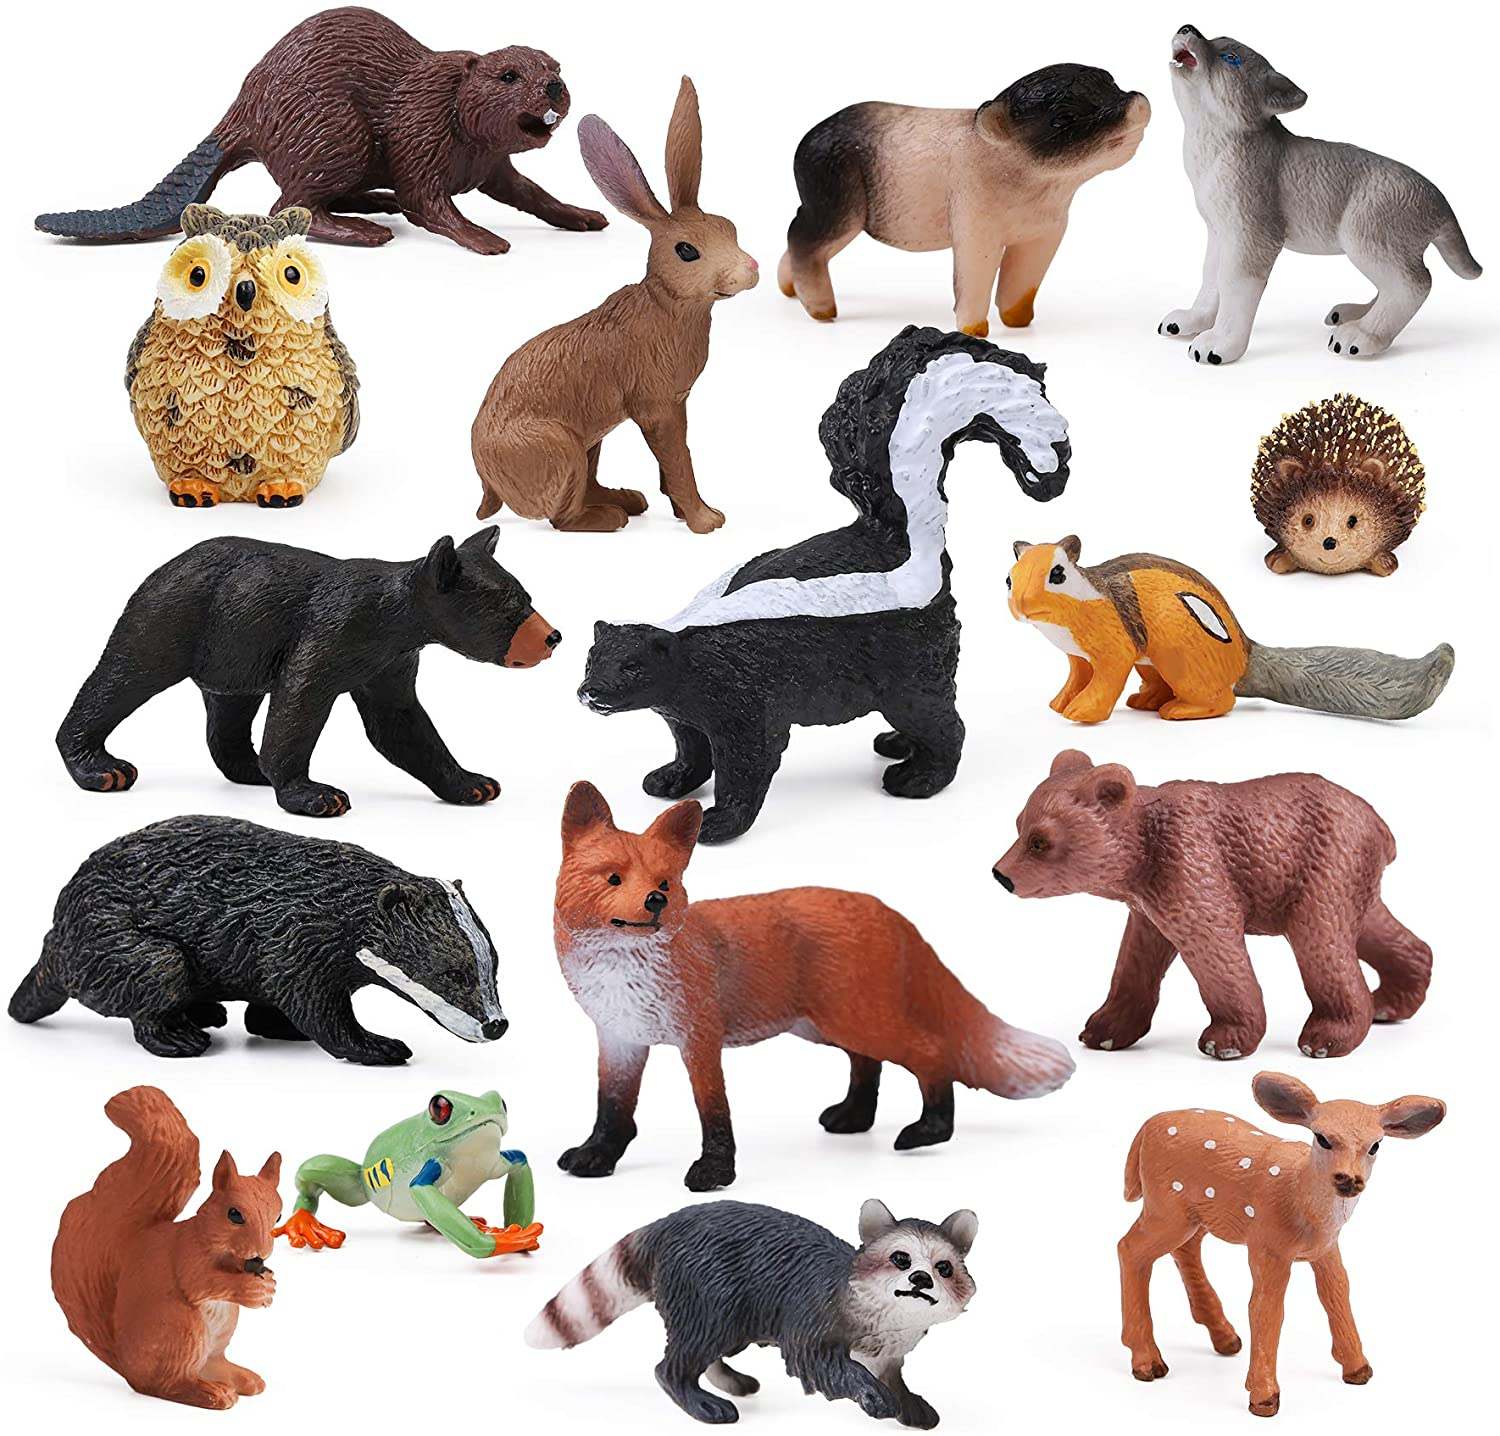 UANDME 16pcs Forest Animals Baby Figures, Woodland Creatures Figurines, Miniature Toys Cake Toppers Cupcake Toppers Birthday Gift for Kids